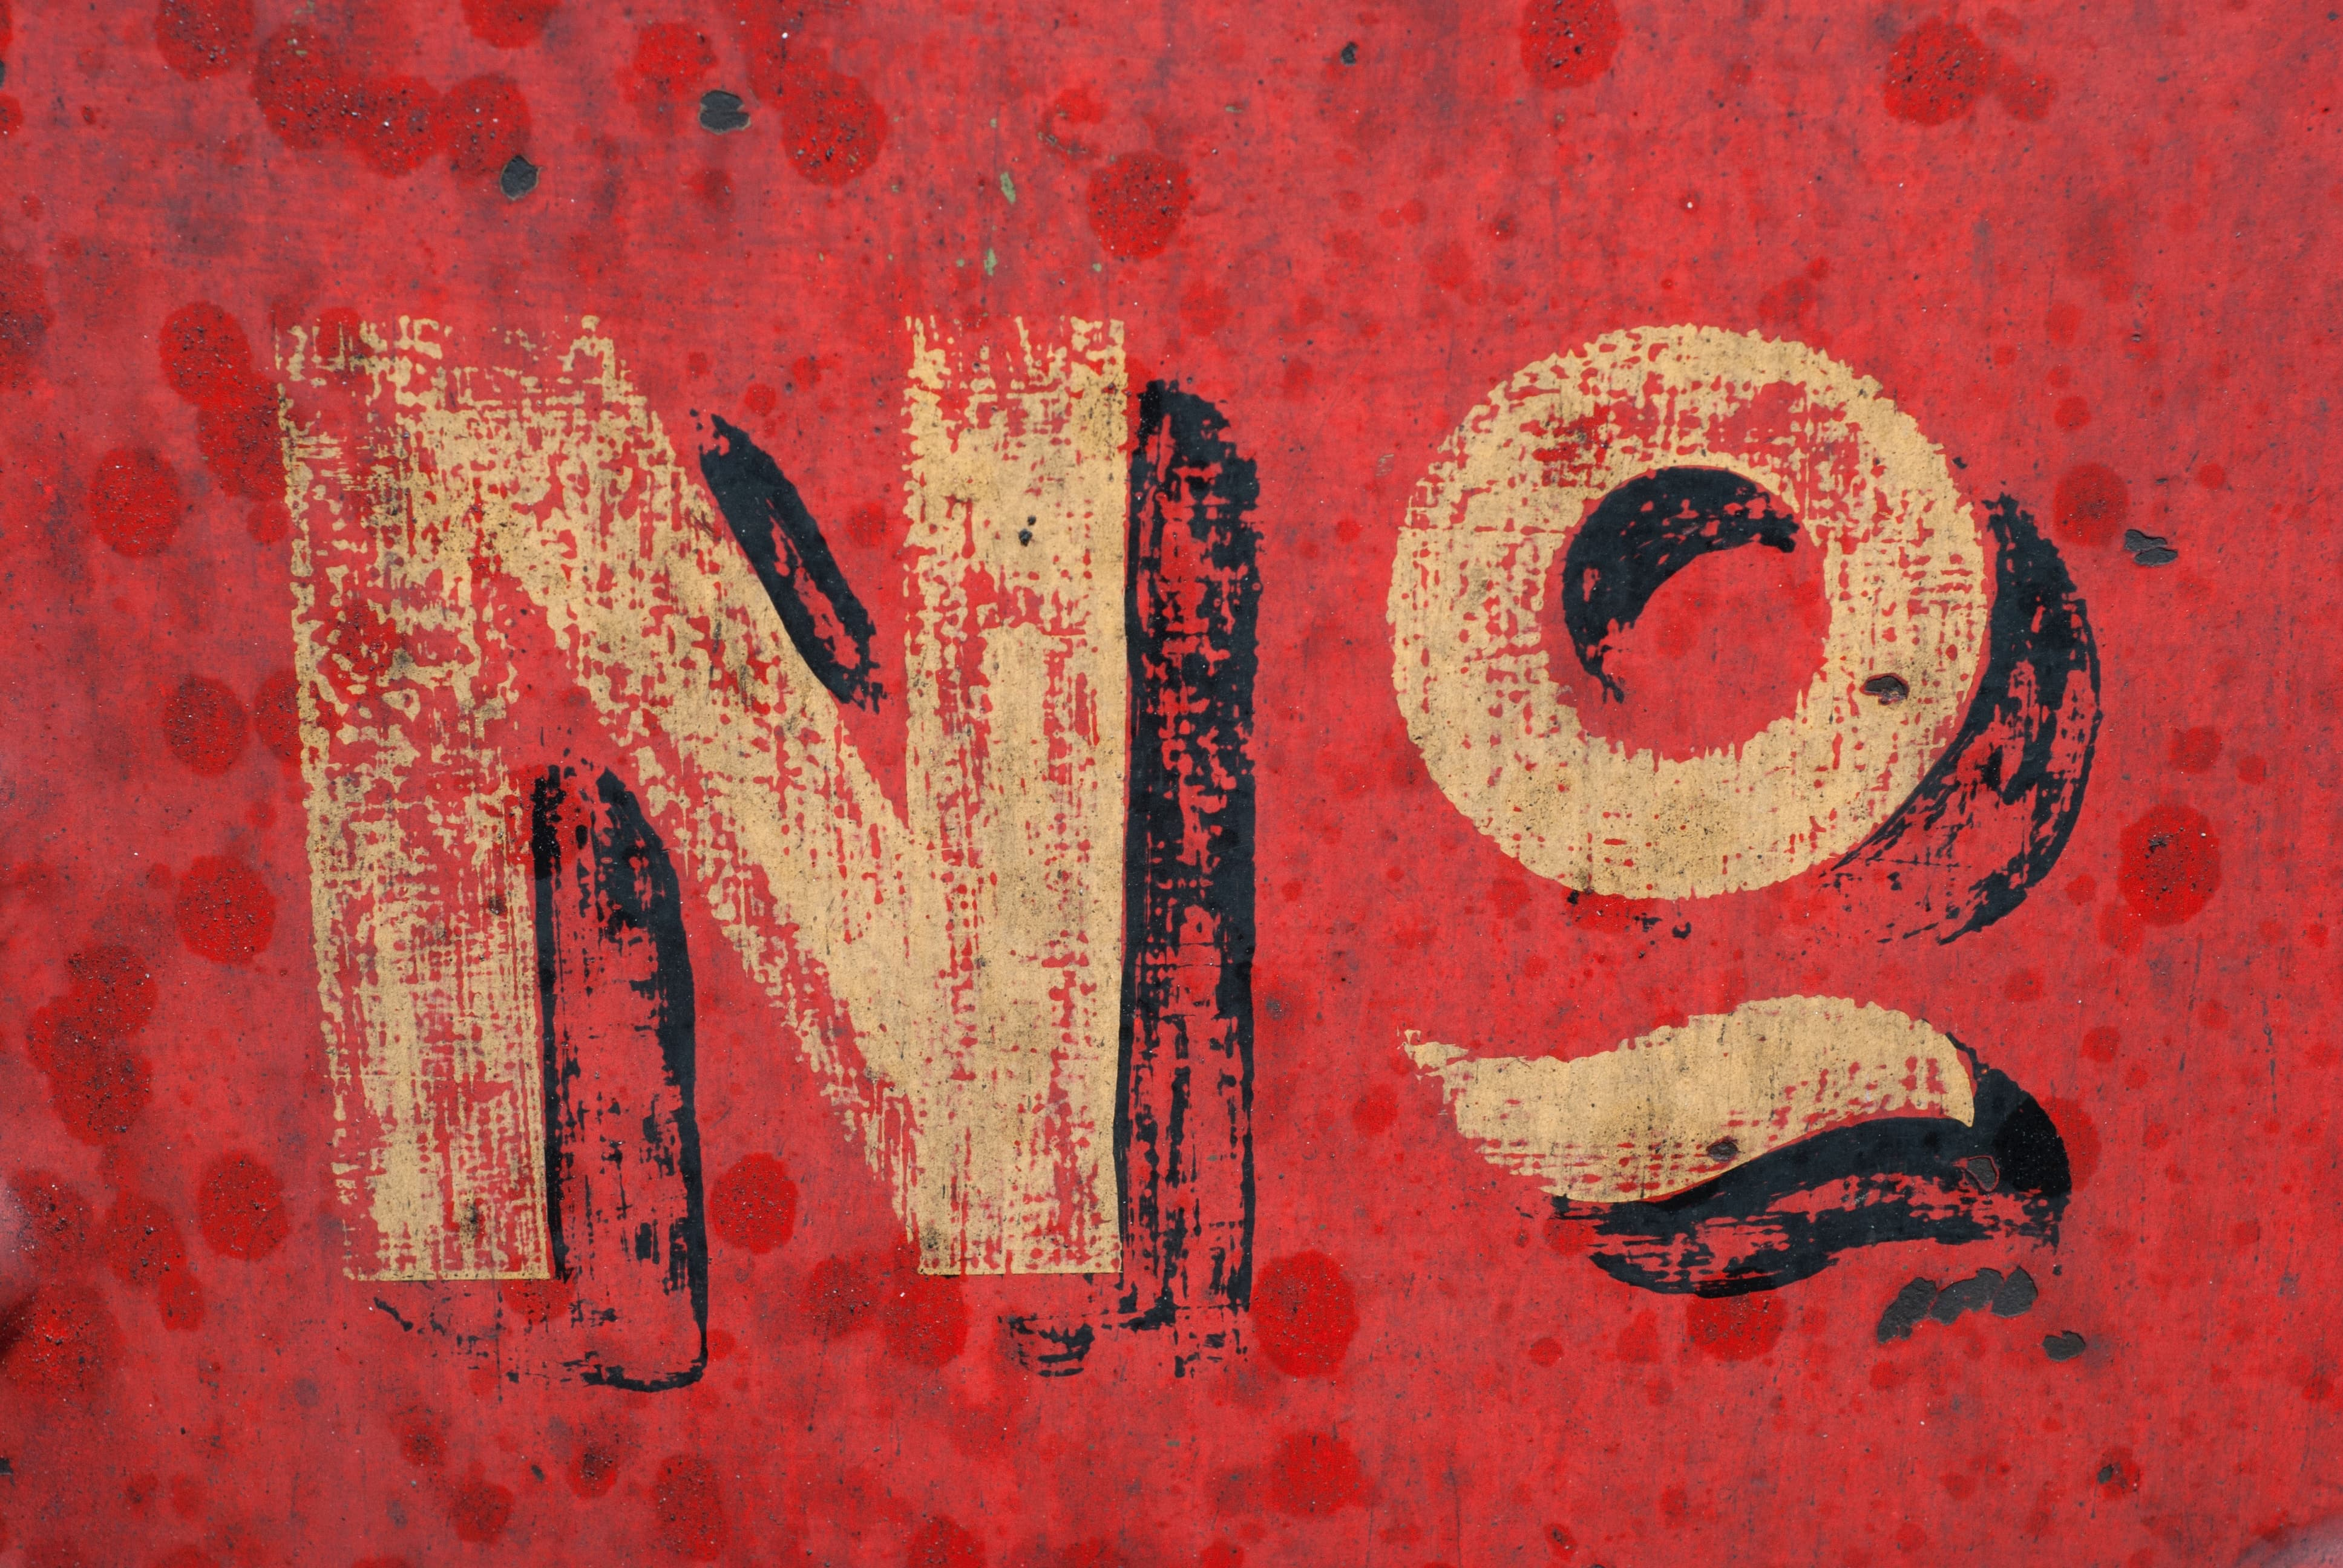 A hand painted sign which says 'No'.